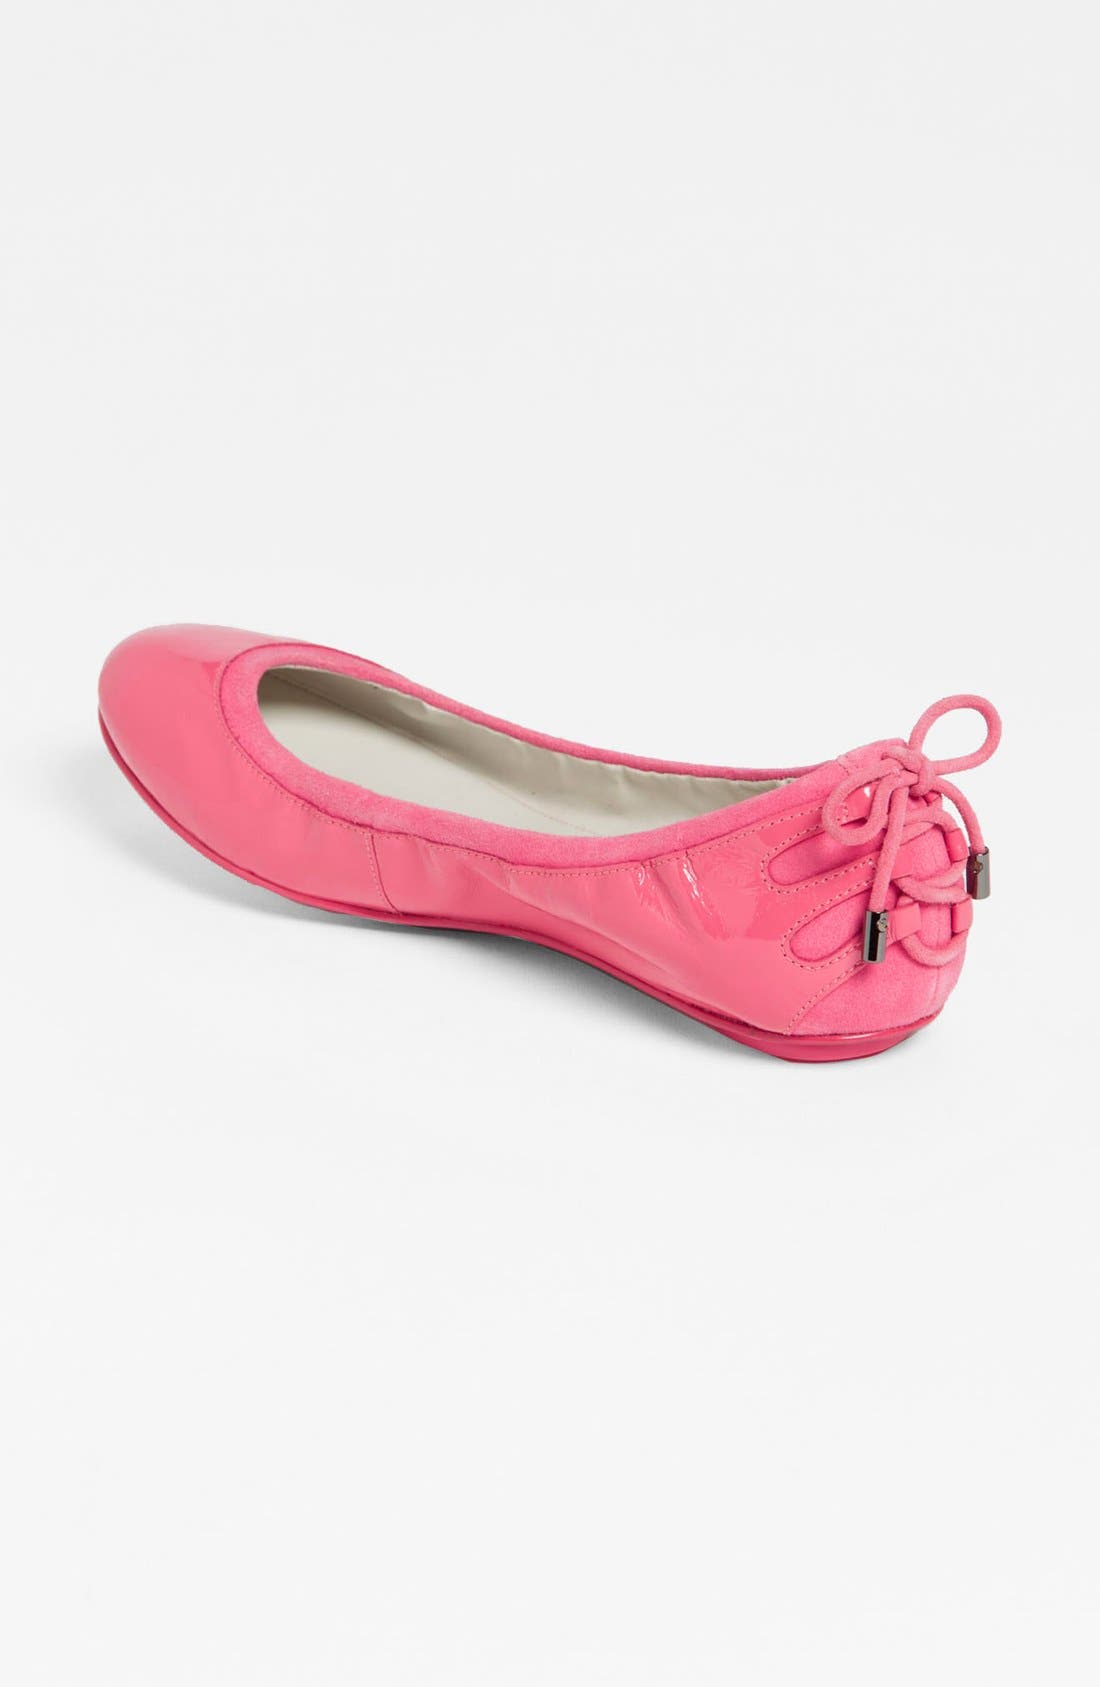 ,                             Maria Sharapova by Cole Haan 'Air Bacara' Flat,                             Alternate thumbnail 92, color,                             651